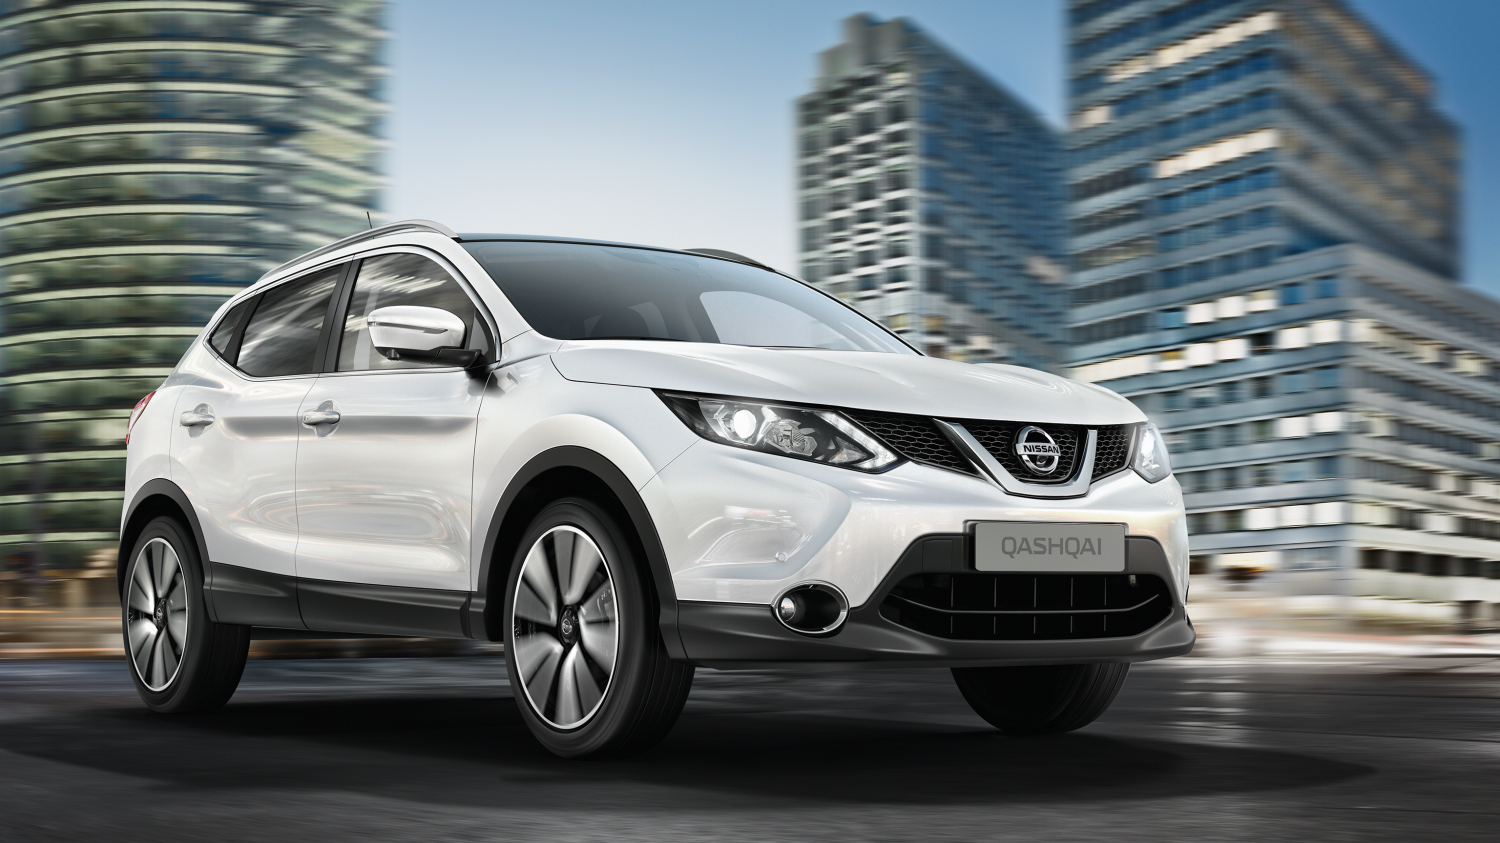 Small SUV design - Front white exterior | Nissan Qashqai